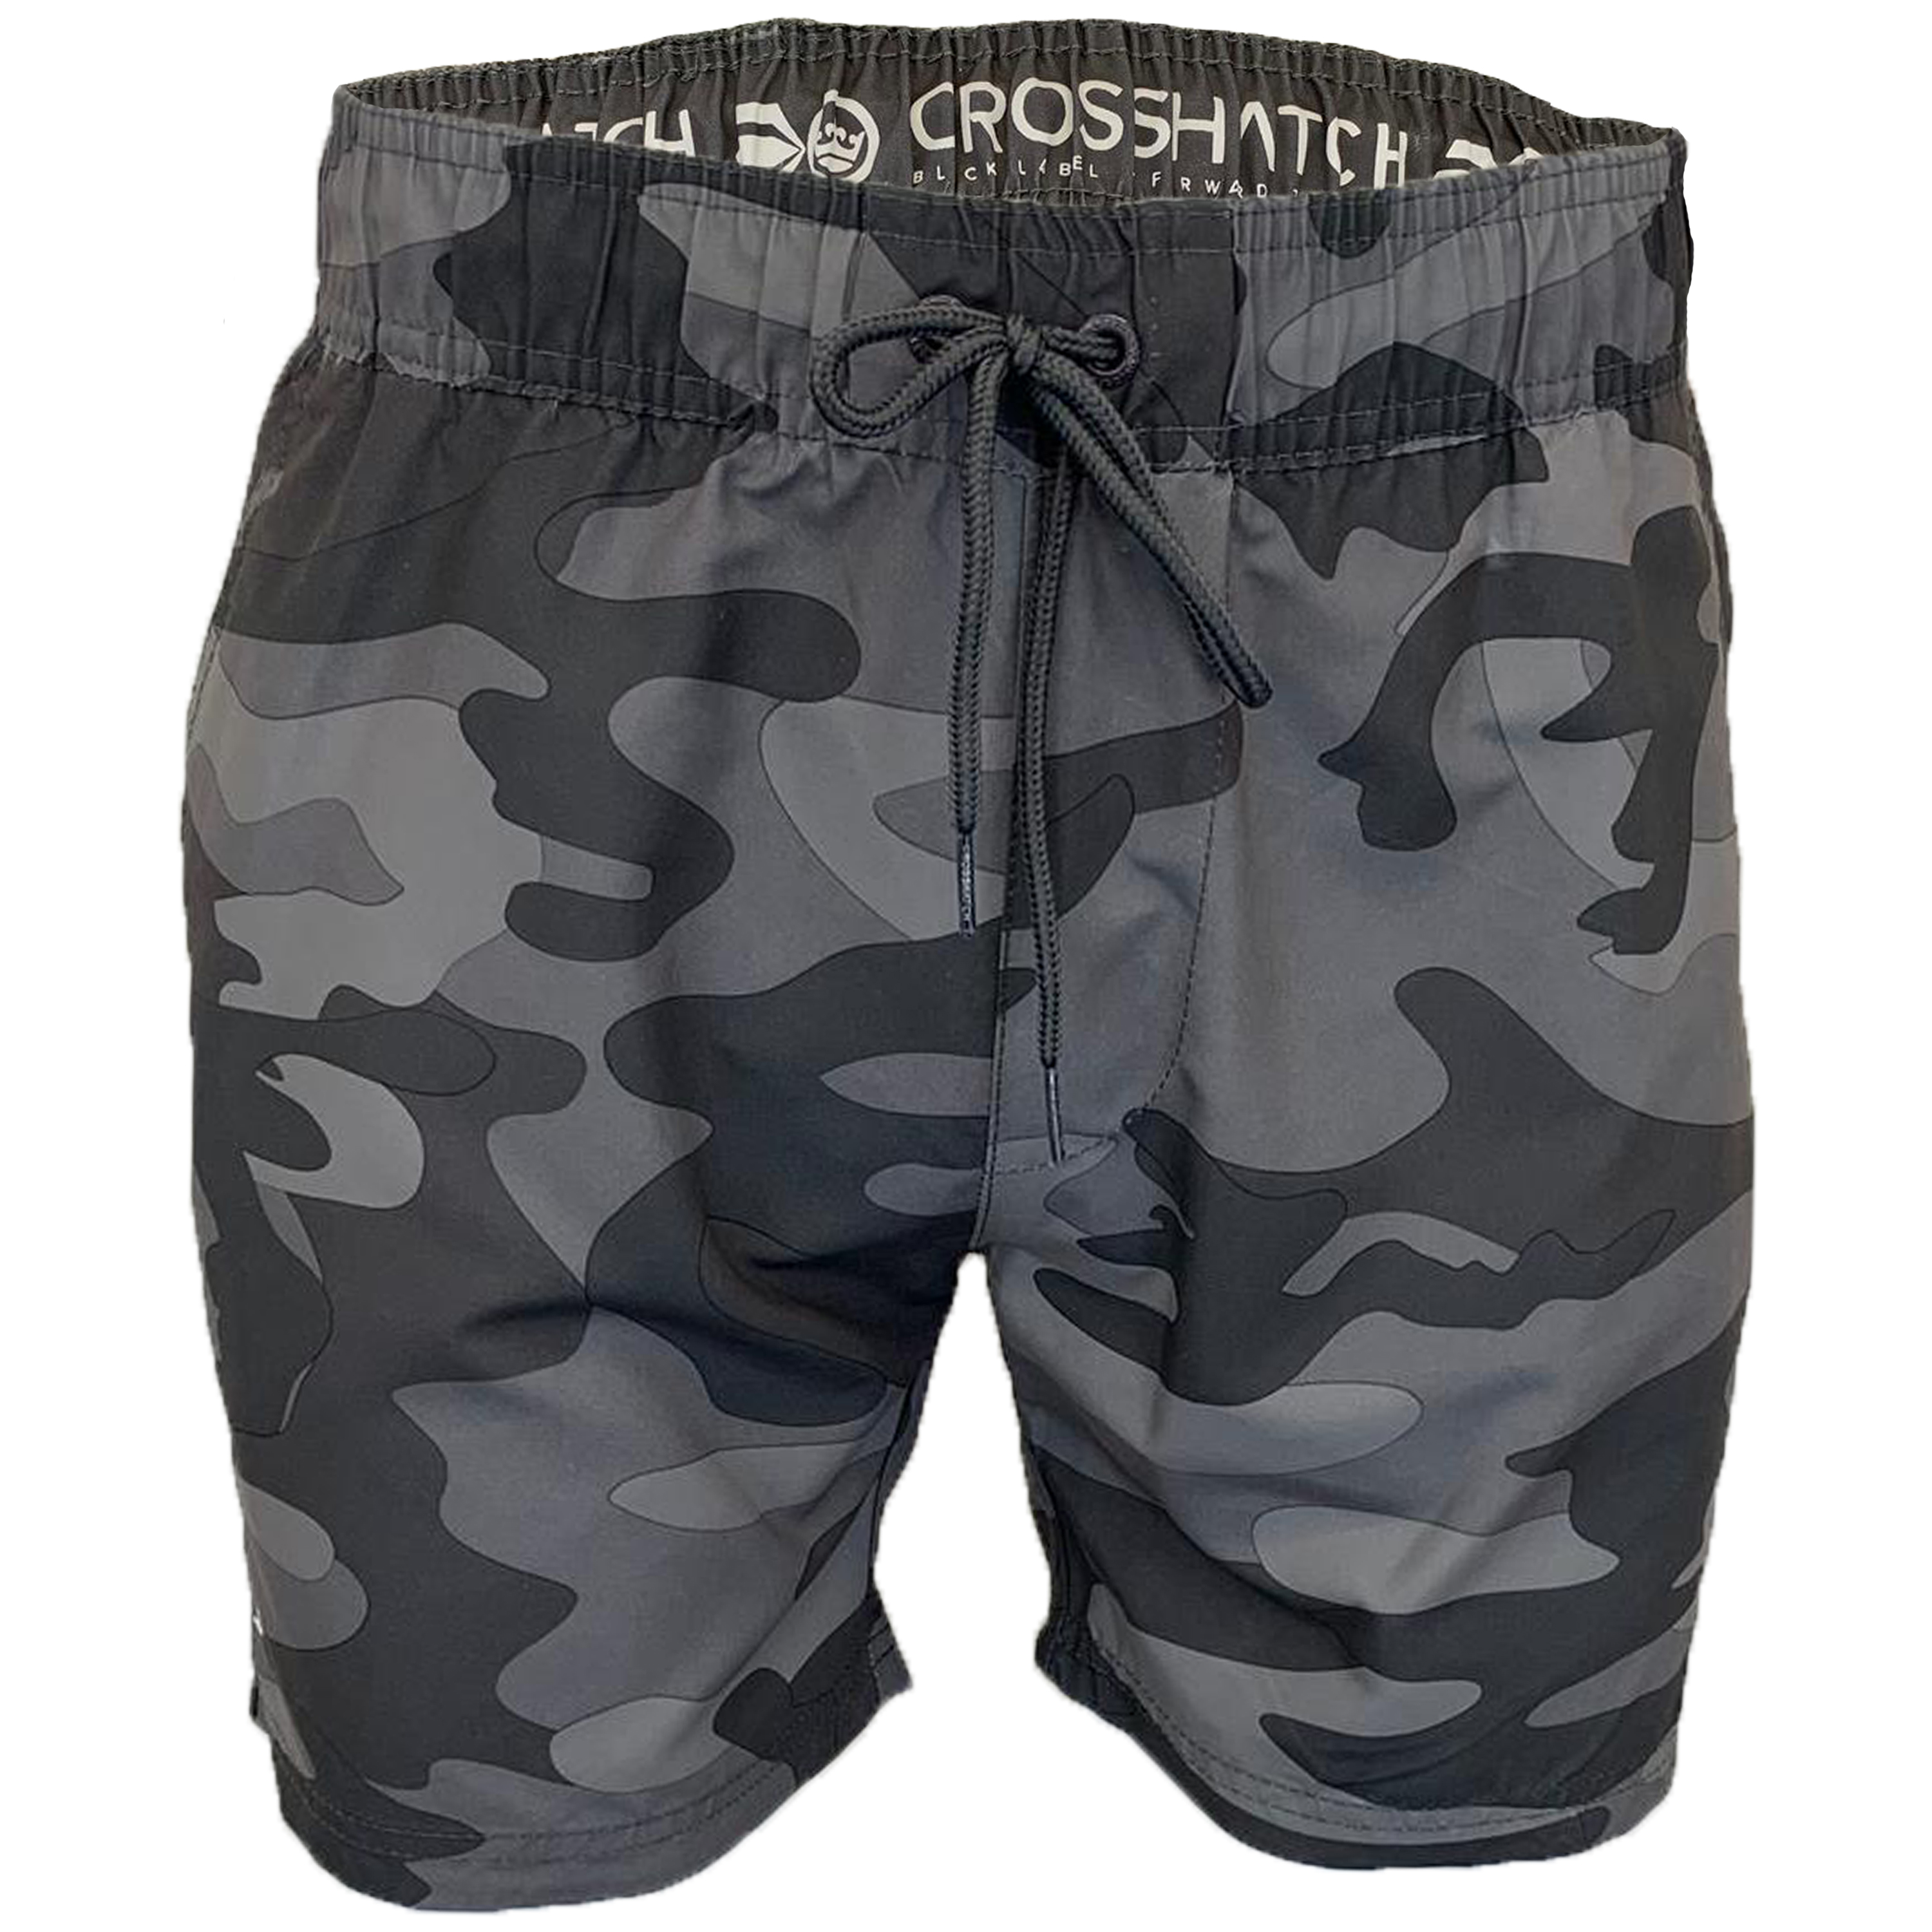 Mens-Camouflage-Swim-Shorts-Crosshatch-Army-Military-Knee-Length-Casual-Summer thumbnail 5